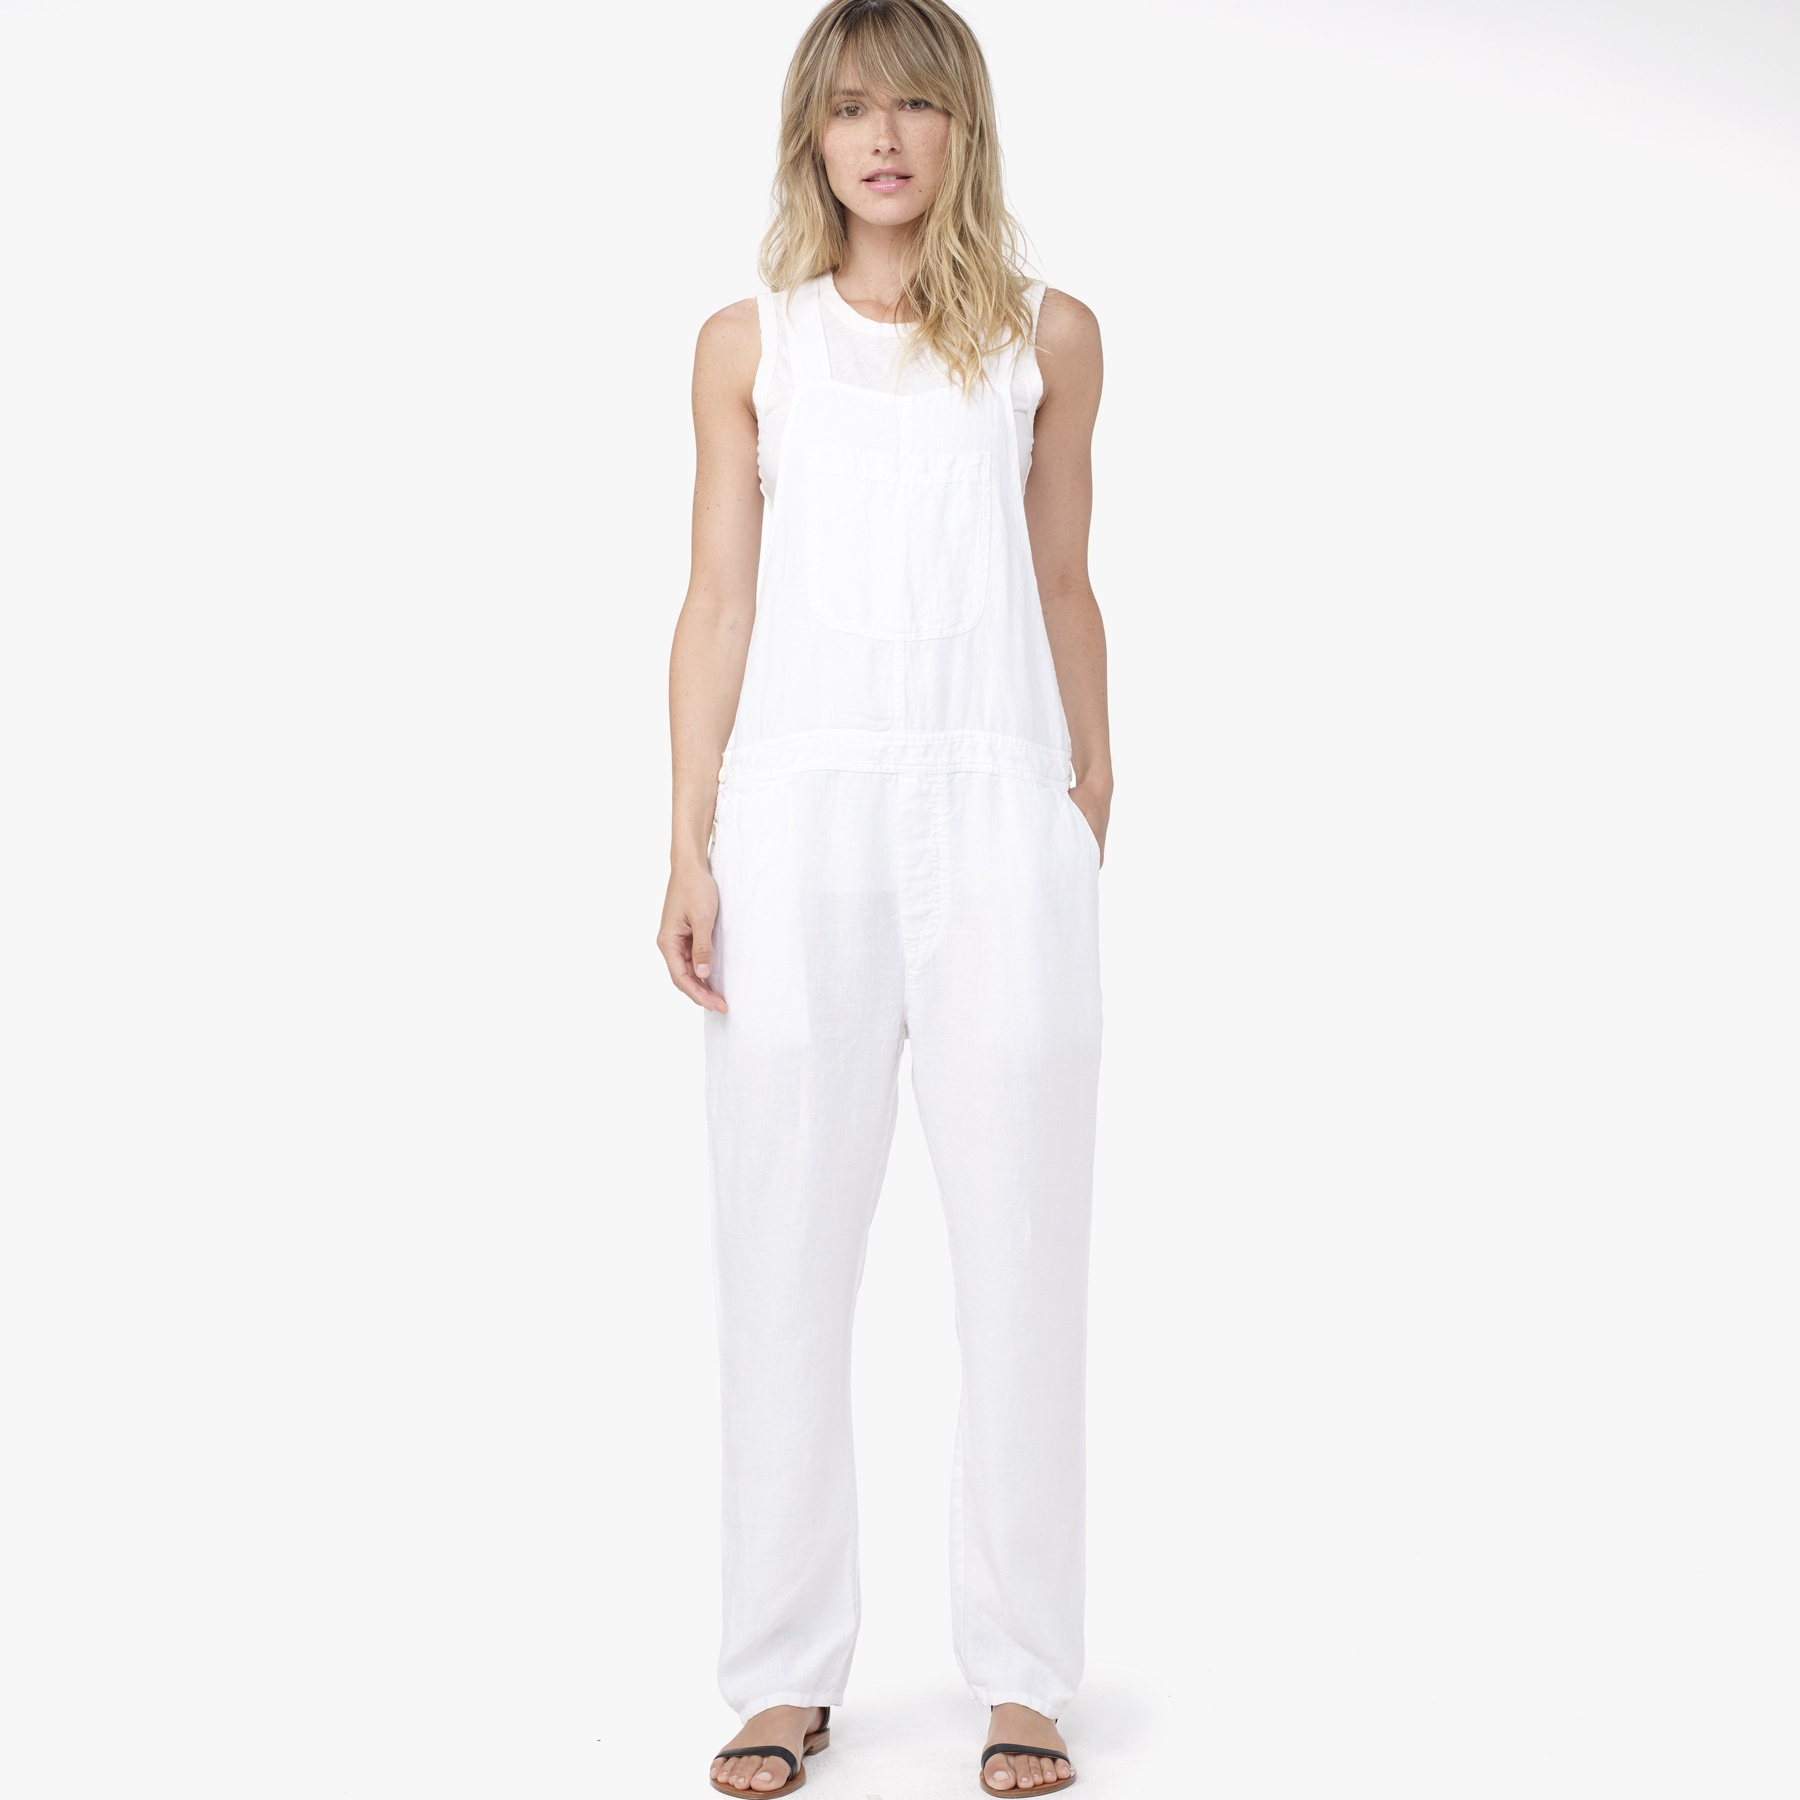 f73aa4b49a39 Lyst - James Perse Linen Overalls in White